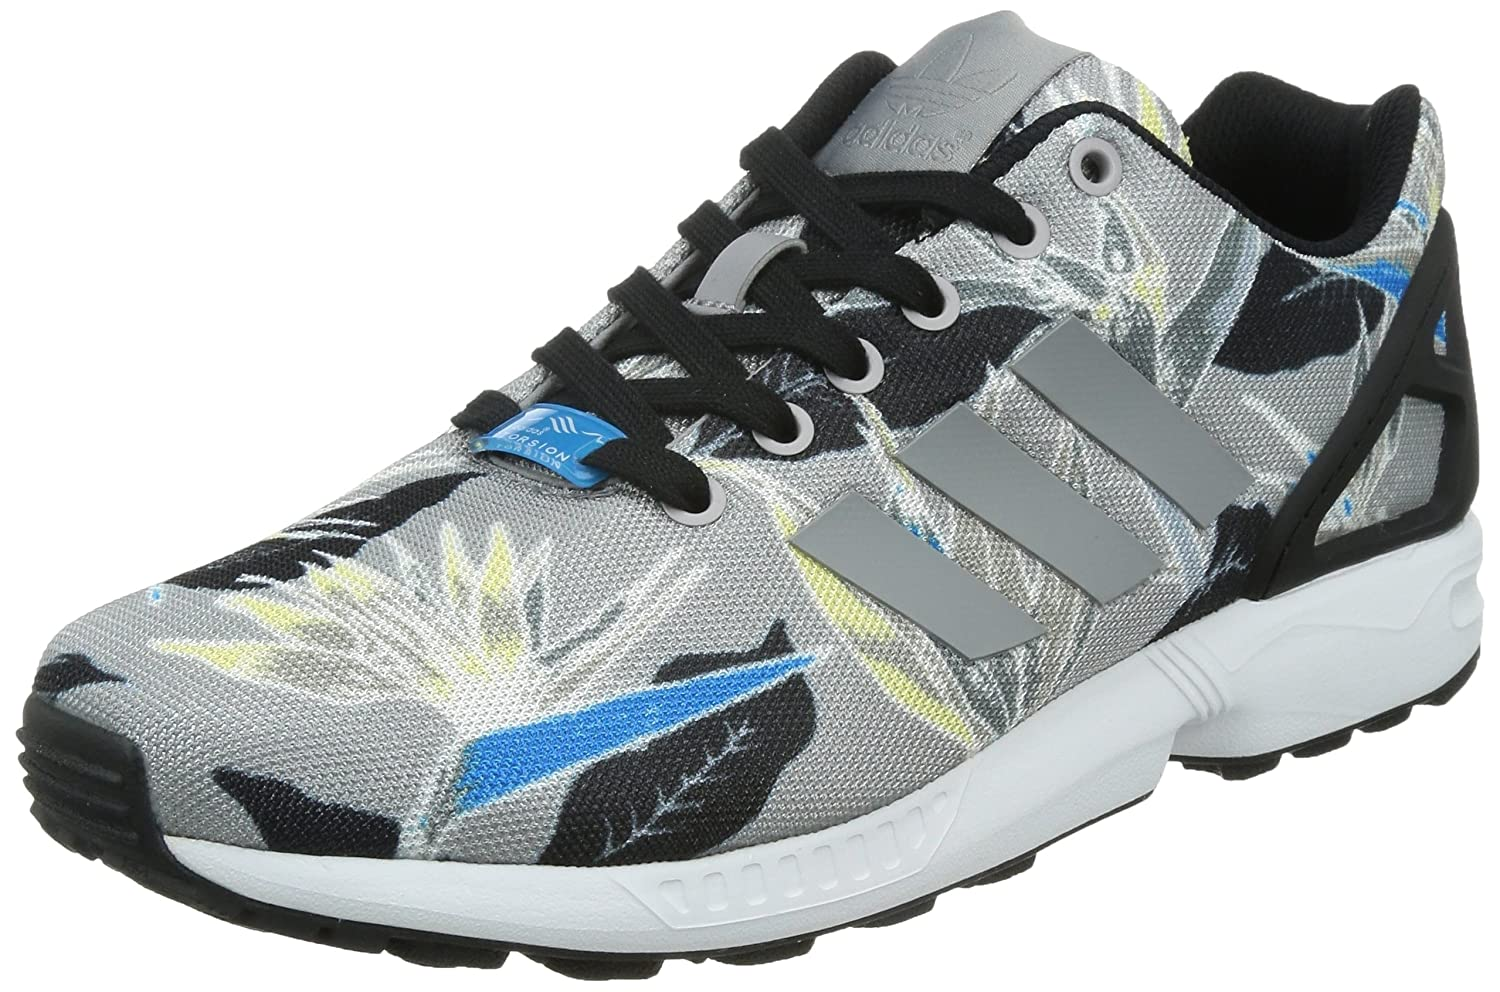 best service b7364 b7dc3 Amazon.com   adidas Originals Mens Torsion ZX Flux Trainers   Shoes